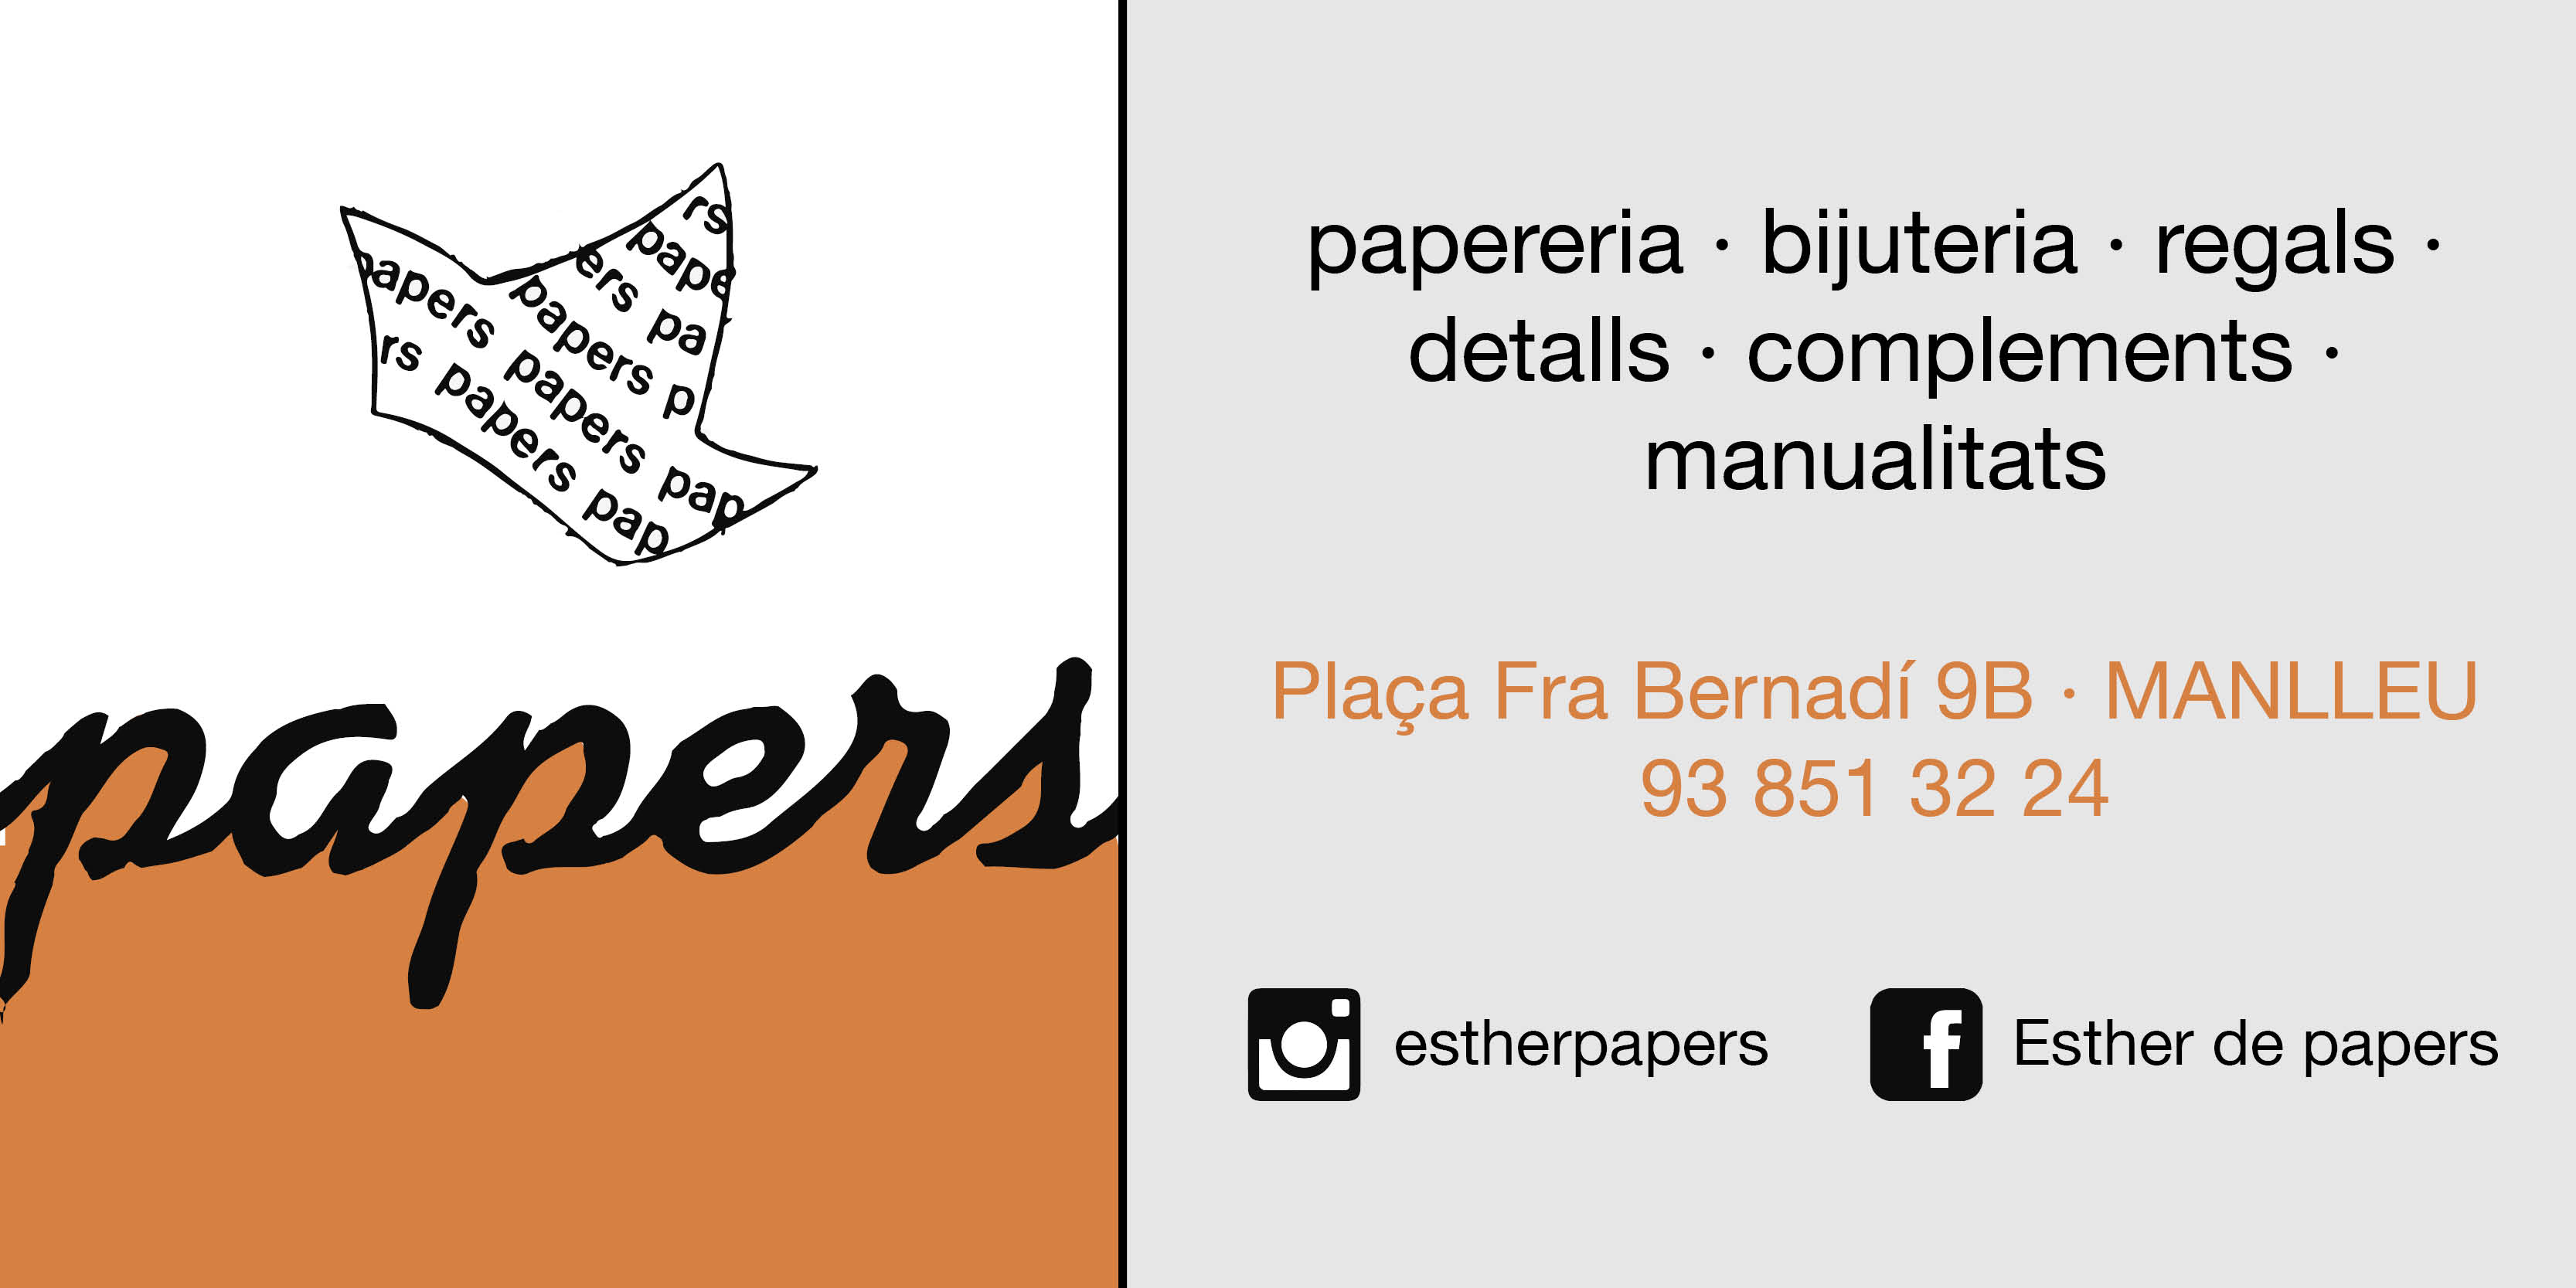 Papers - Papereria i complements